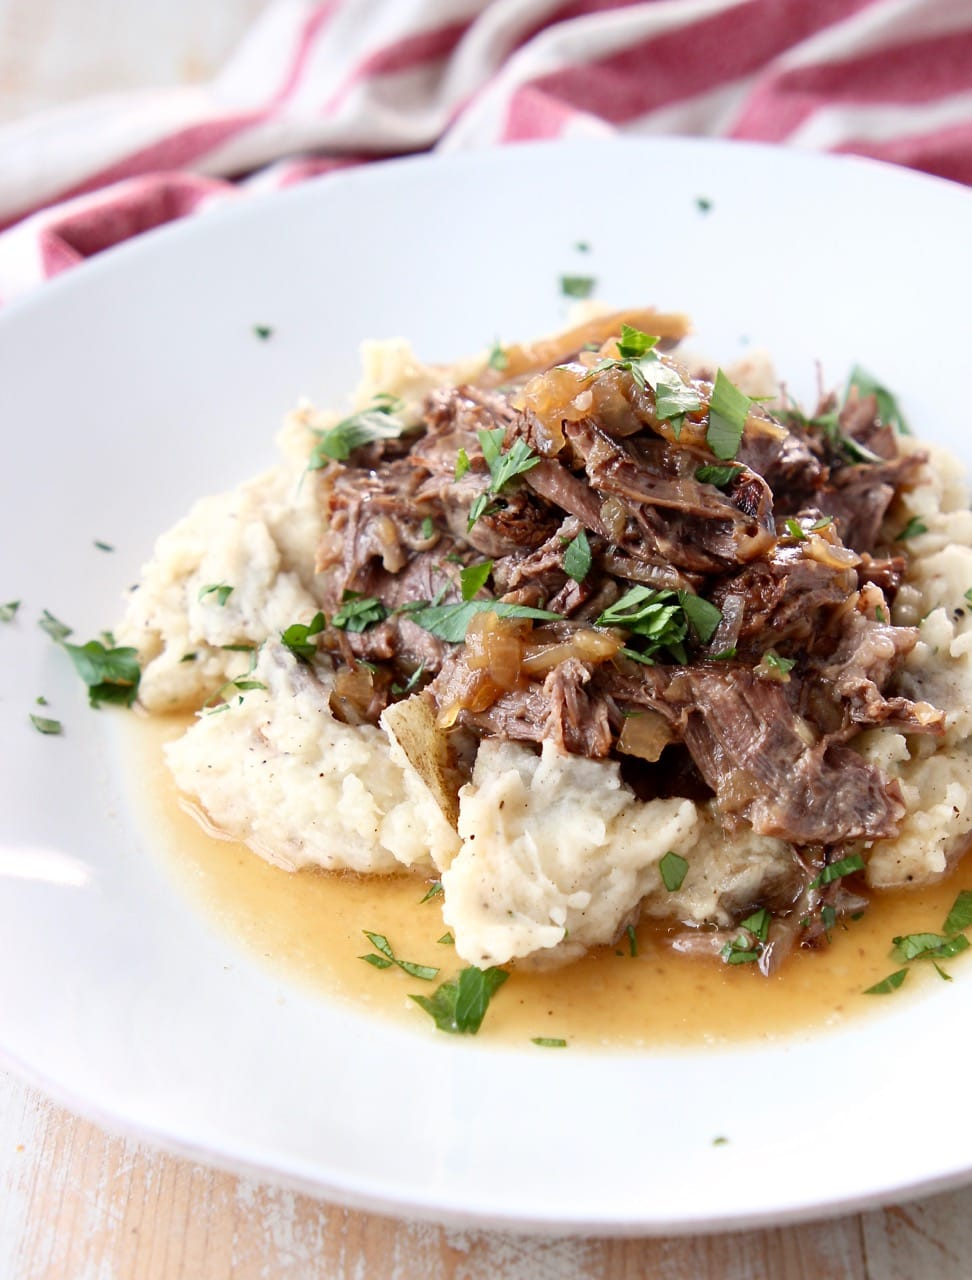 Shredded pot roast topped with fresh parsley on mashed potatoes on white plate with red and white towel